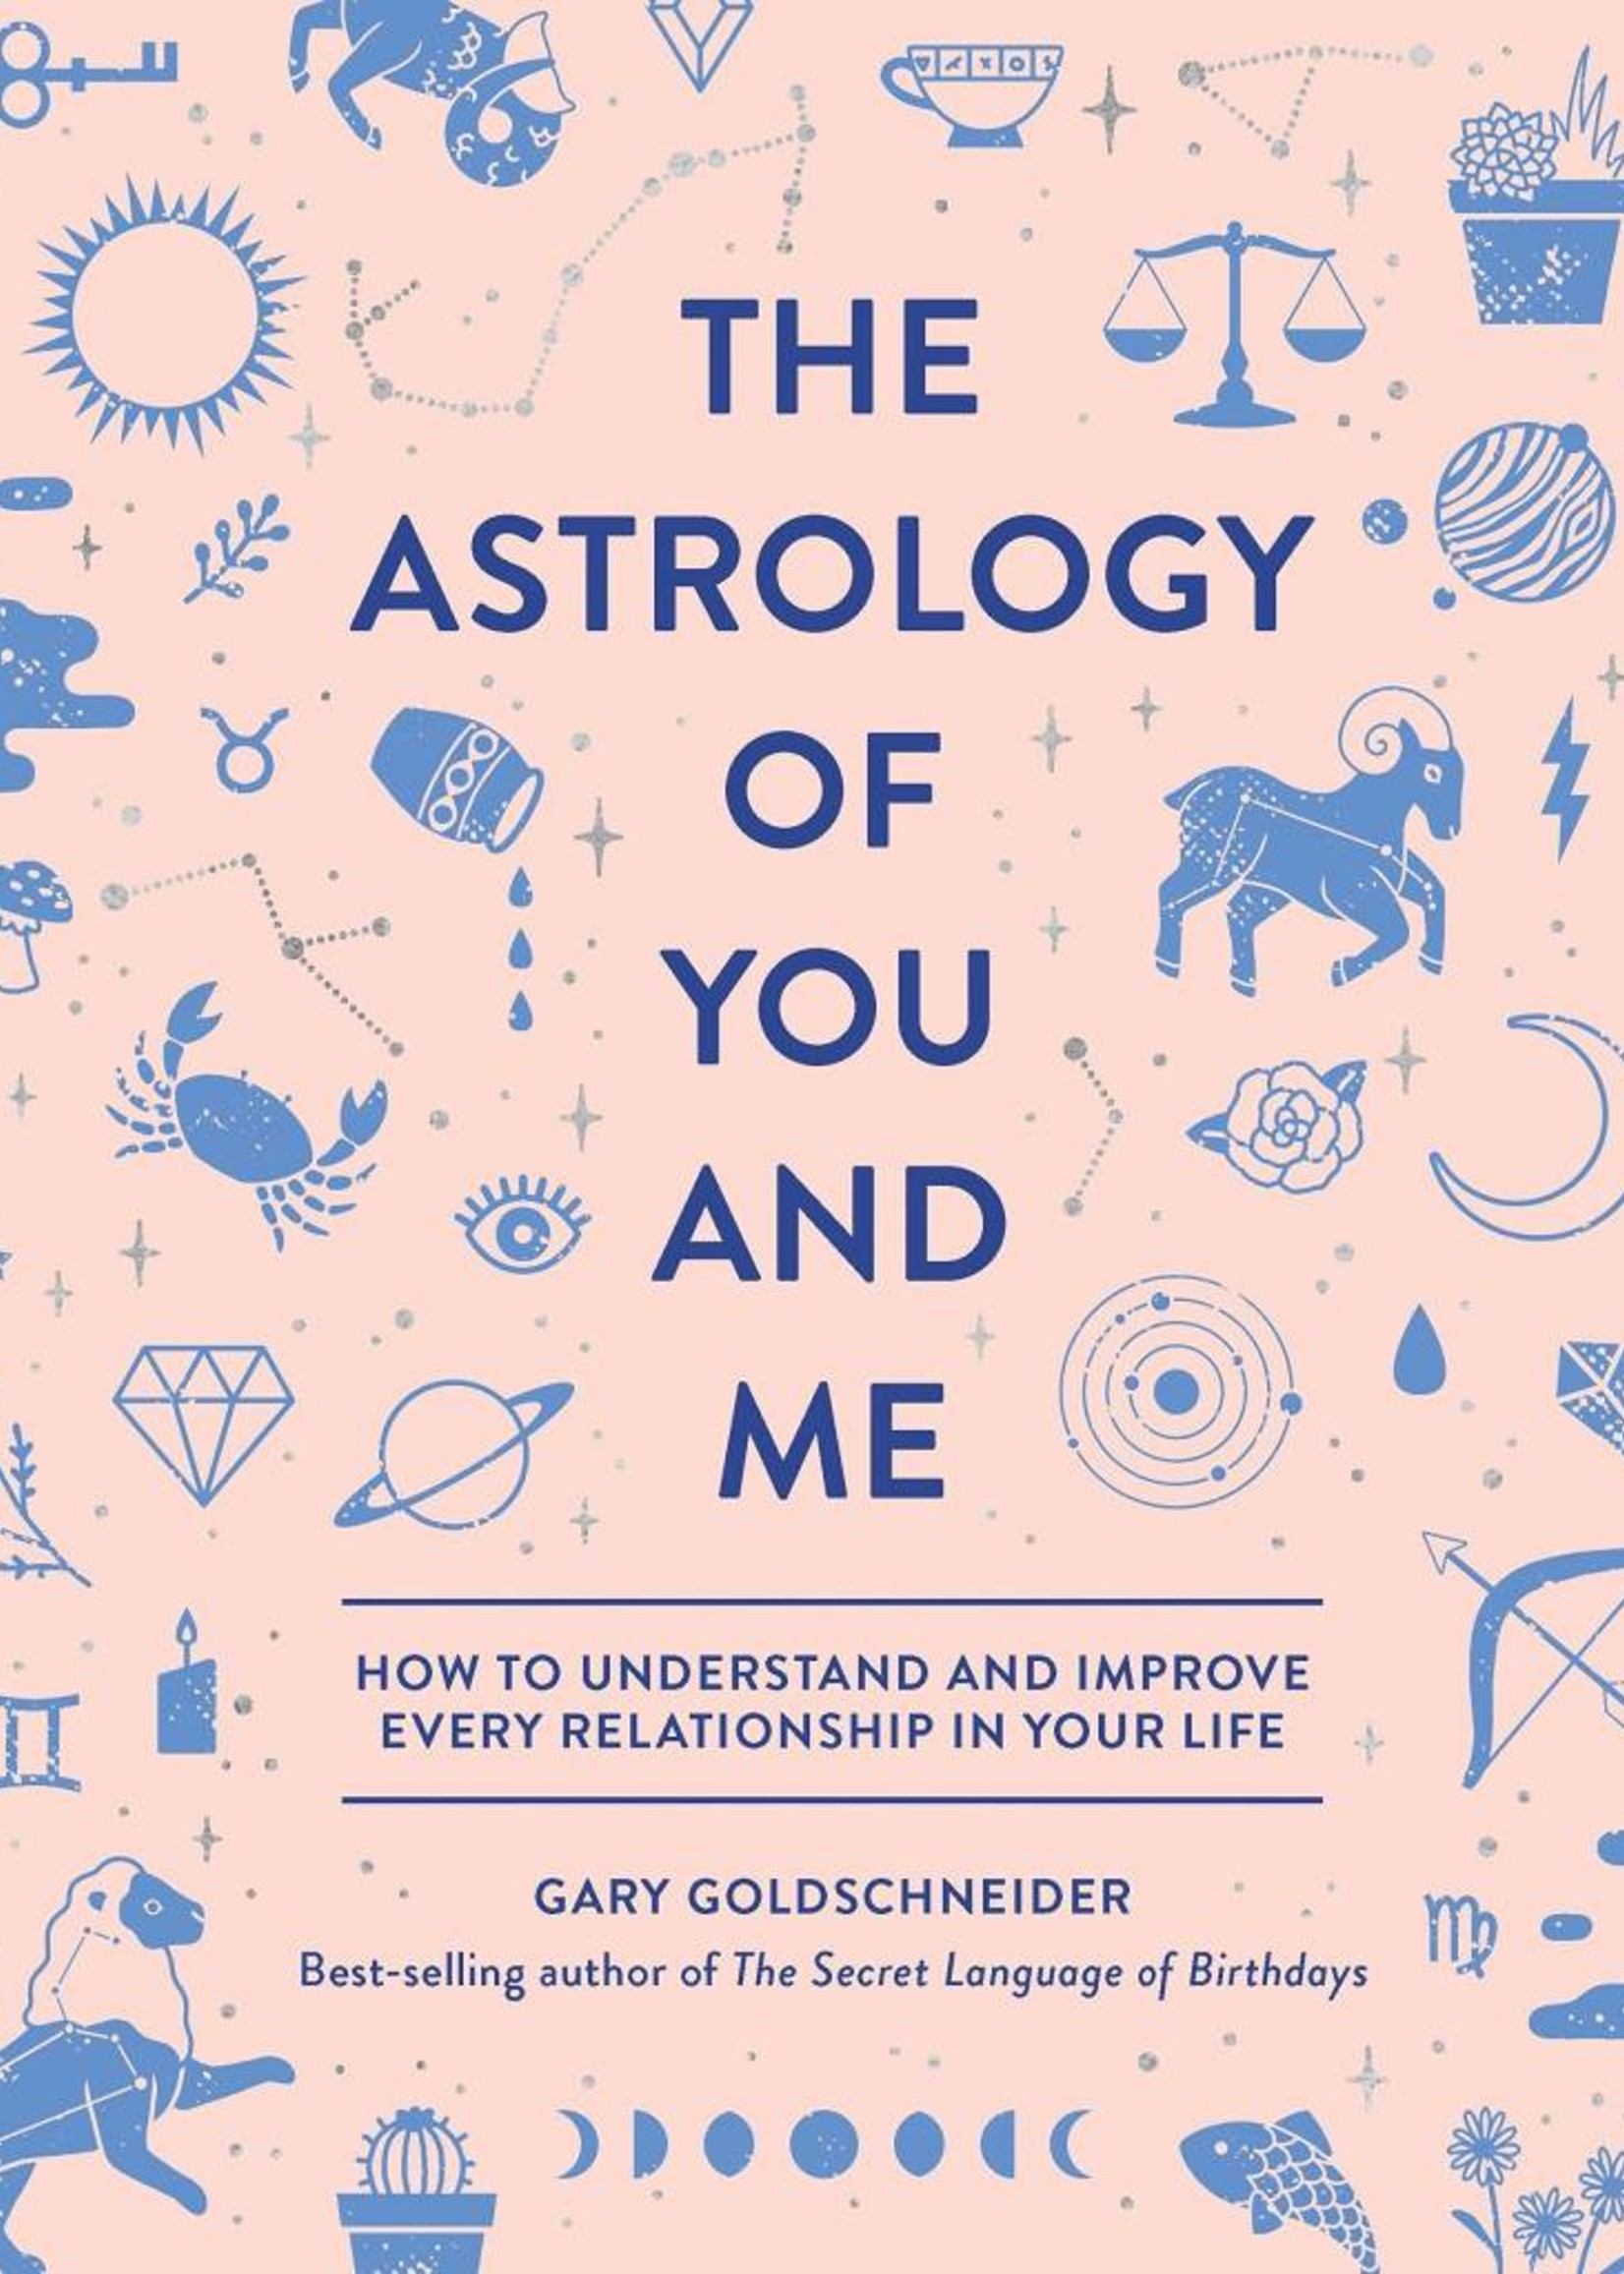 The Astrology of You and Me | How to Understand and Improve Every Relationship in Your Life